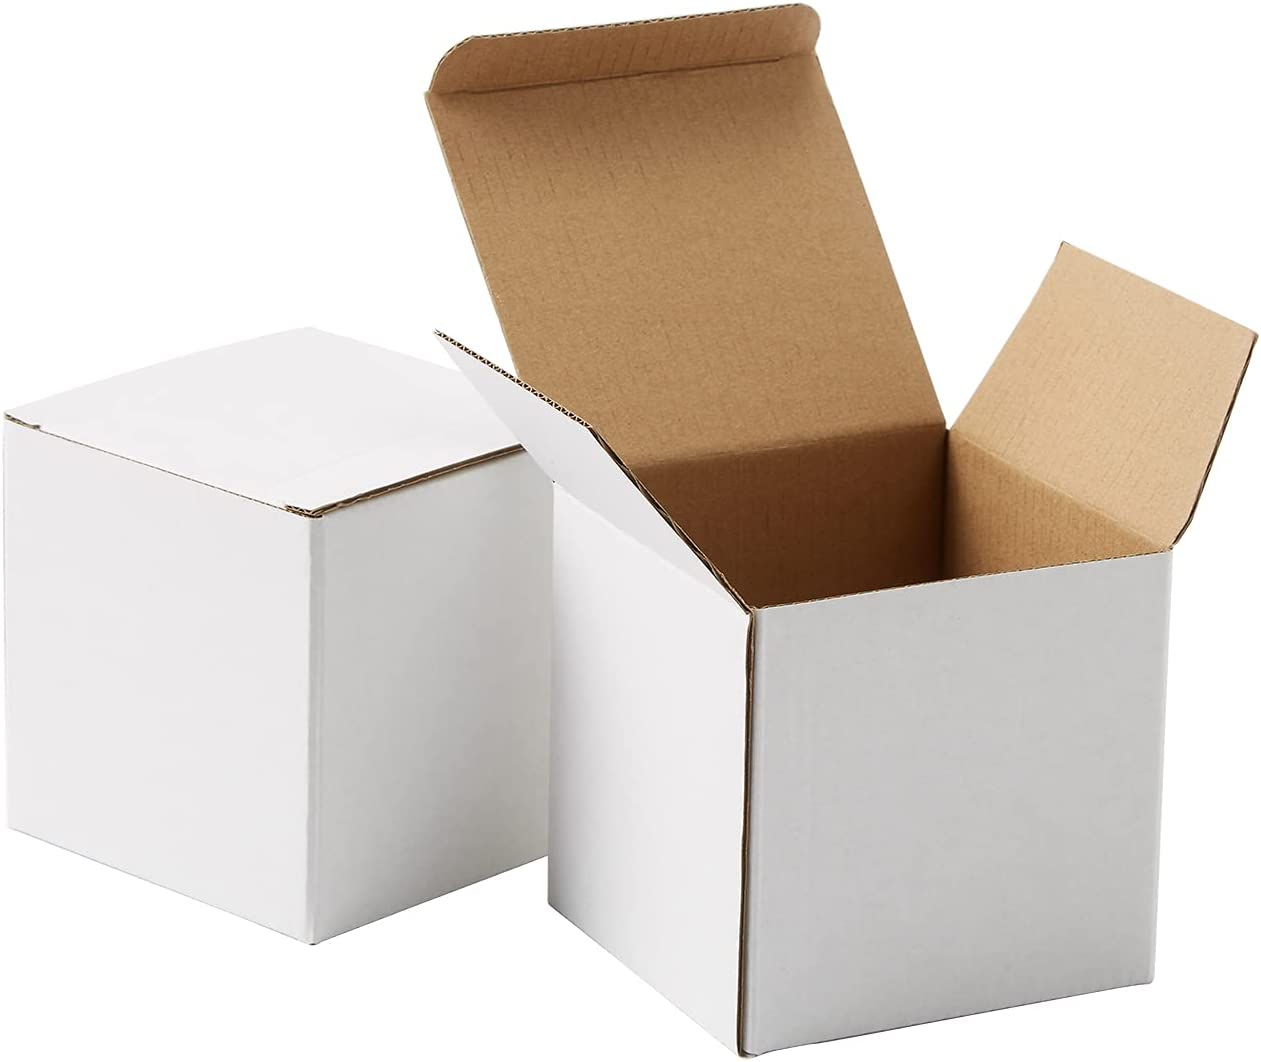 White Corrugated Boxes Packaging Moving Boxs Small 4